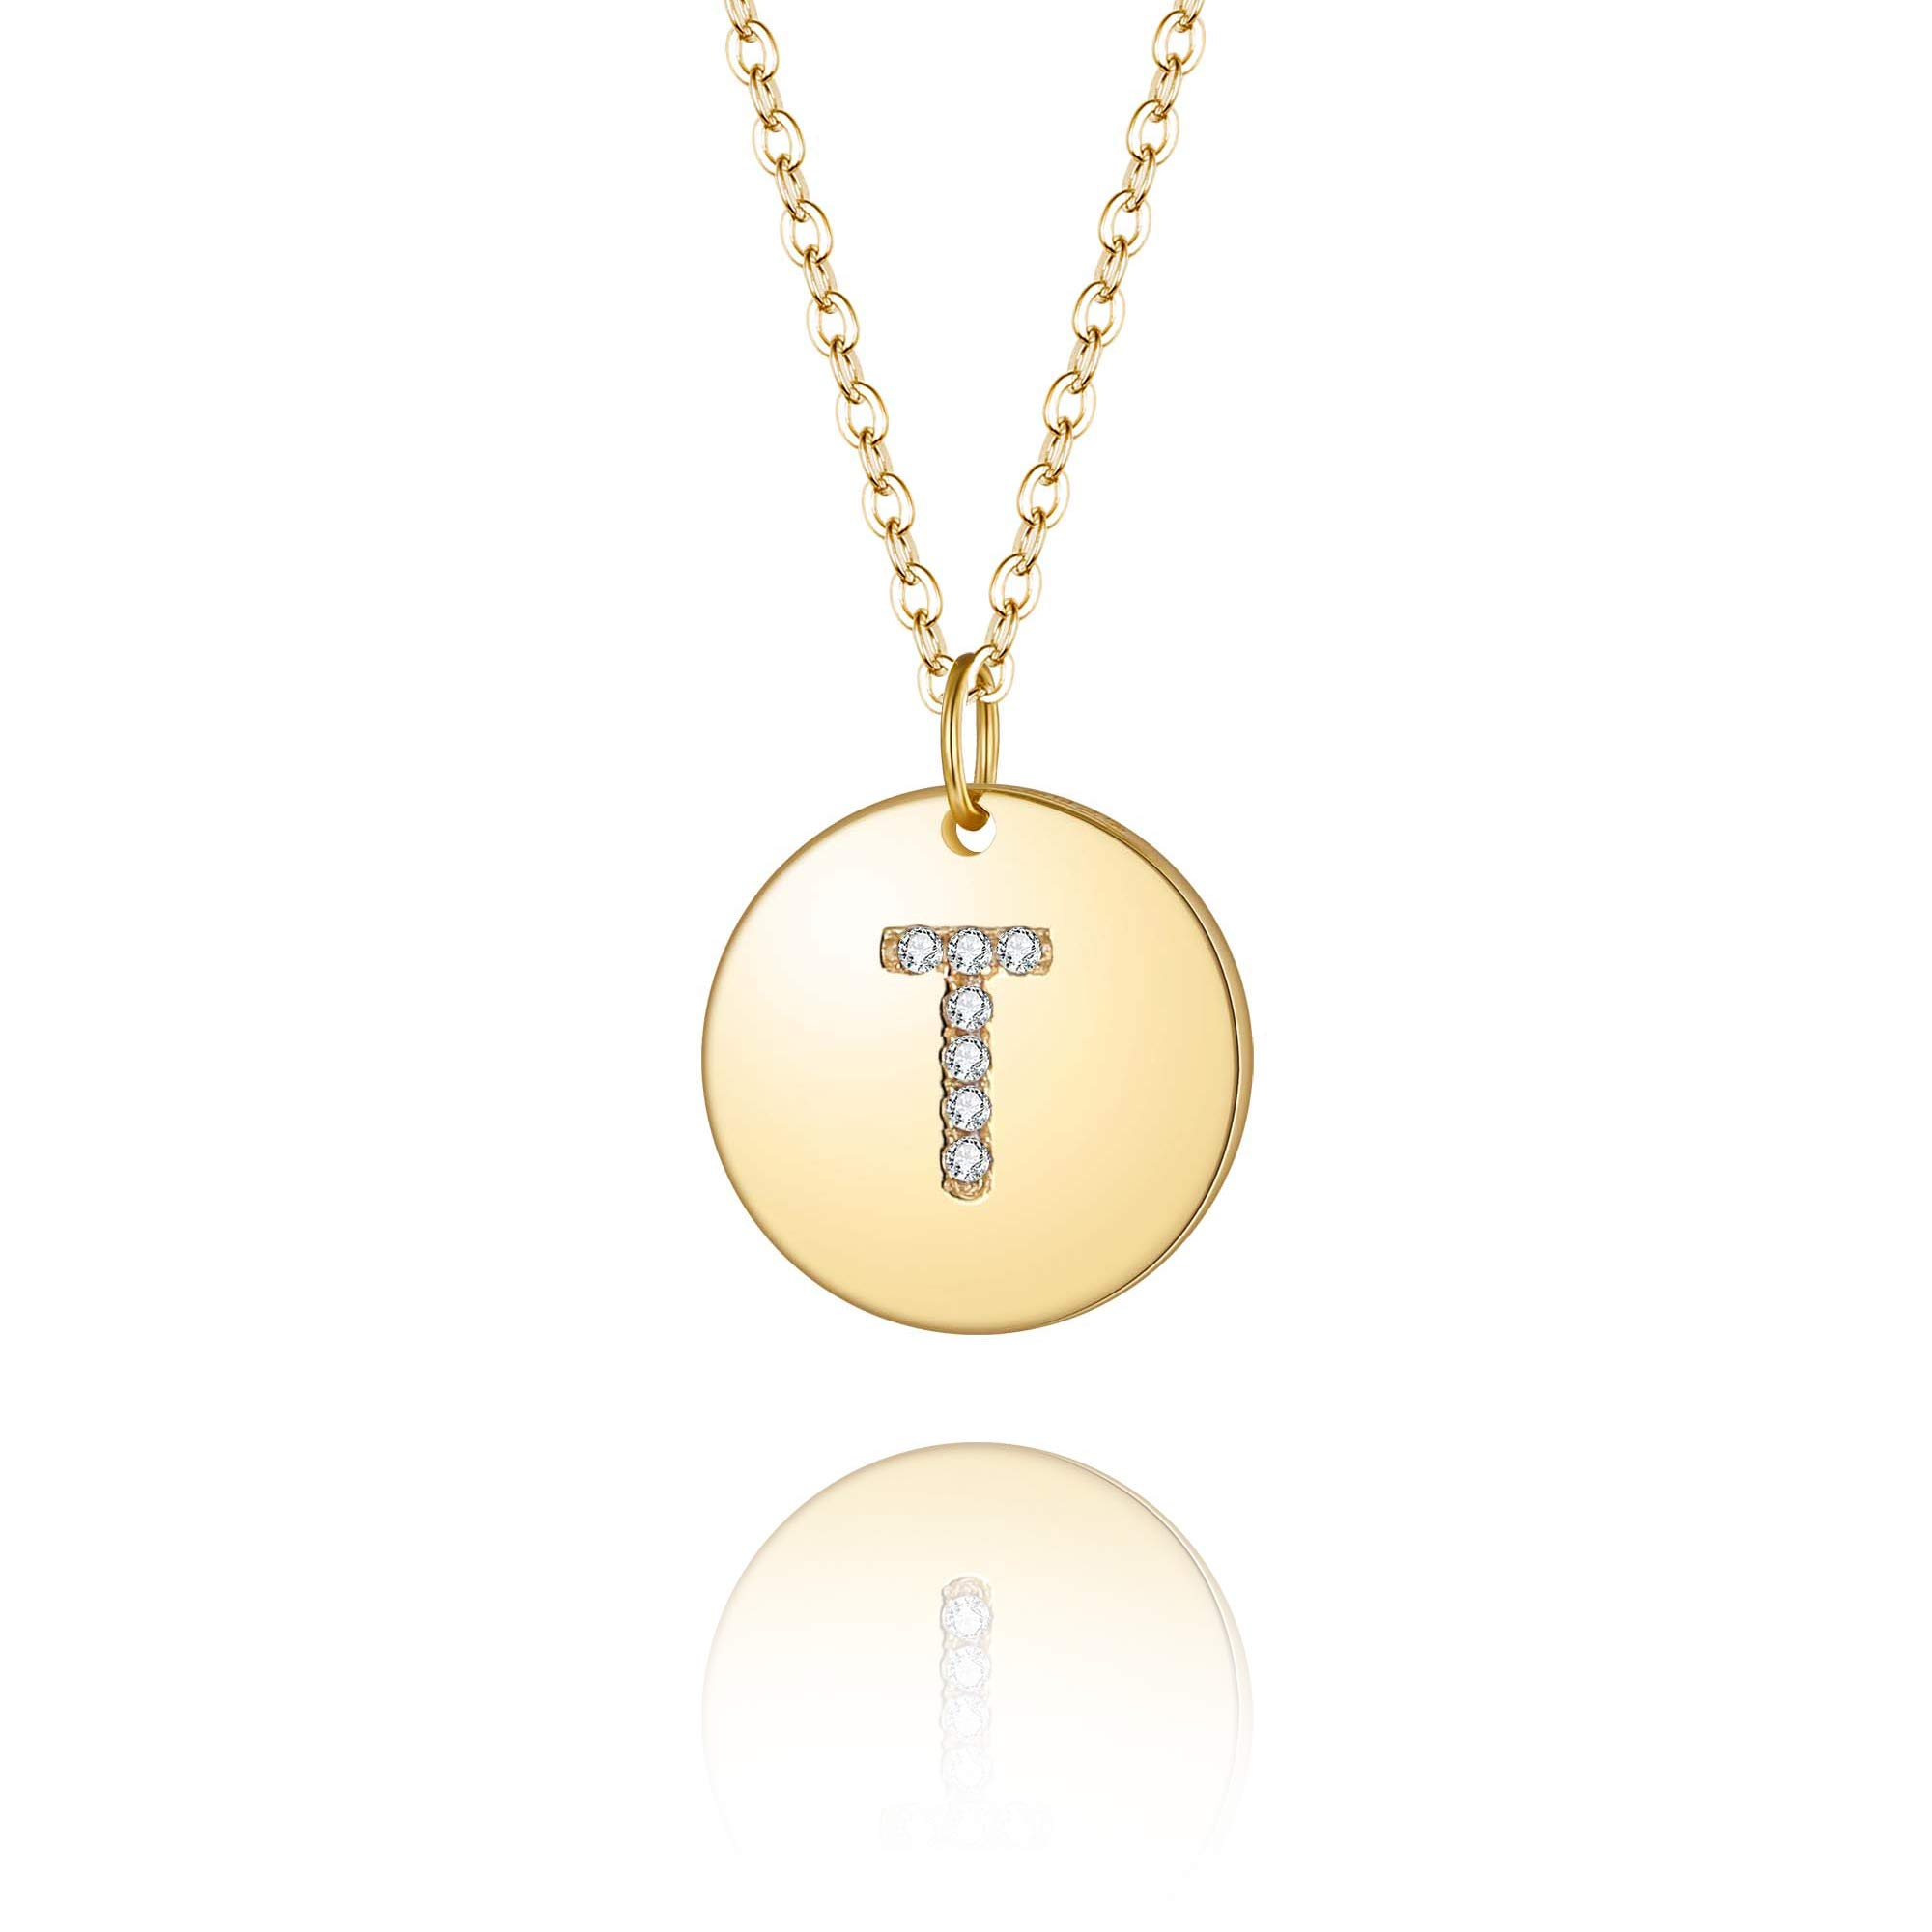 EleQueen 14K Gold Plated Initial Letter T Necklace for Girls | Tiny Disc Alphabet Pendant Necklace for Women